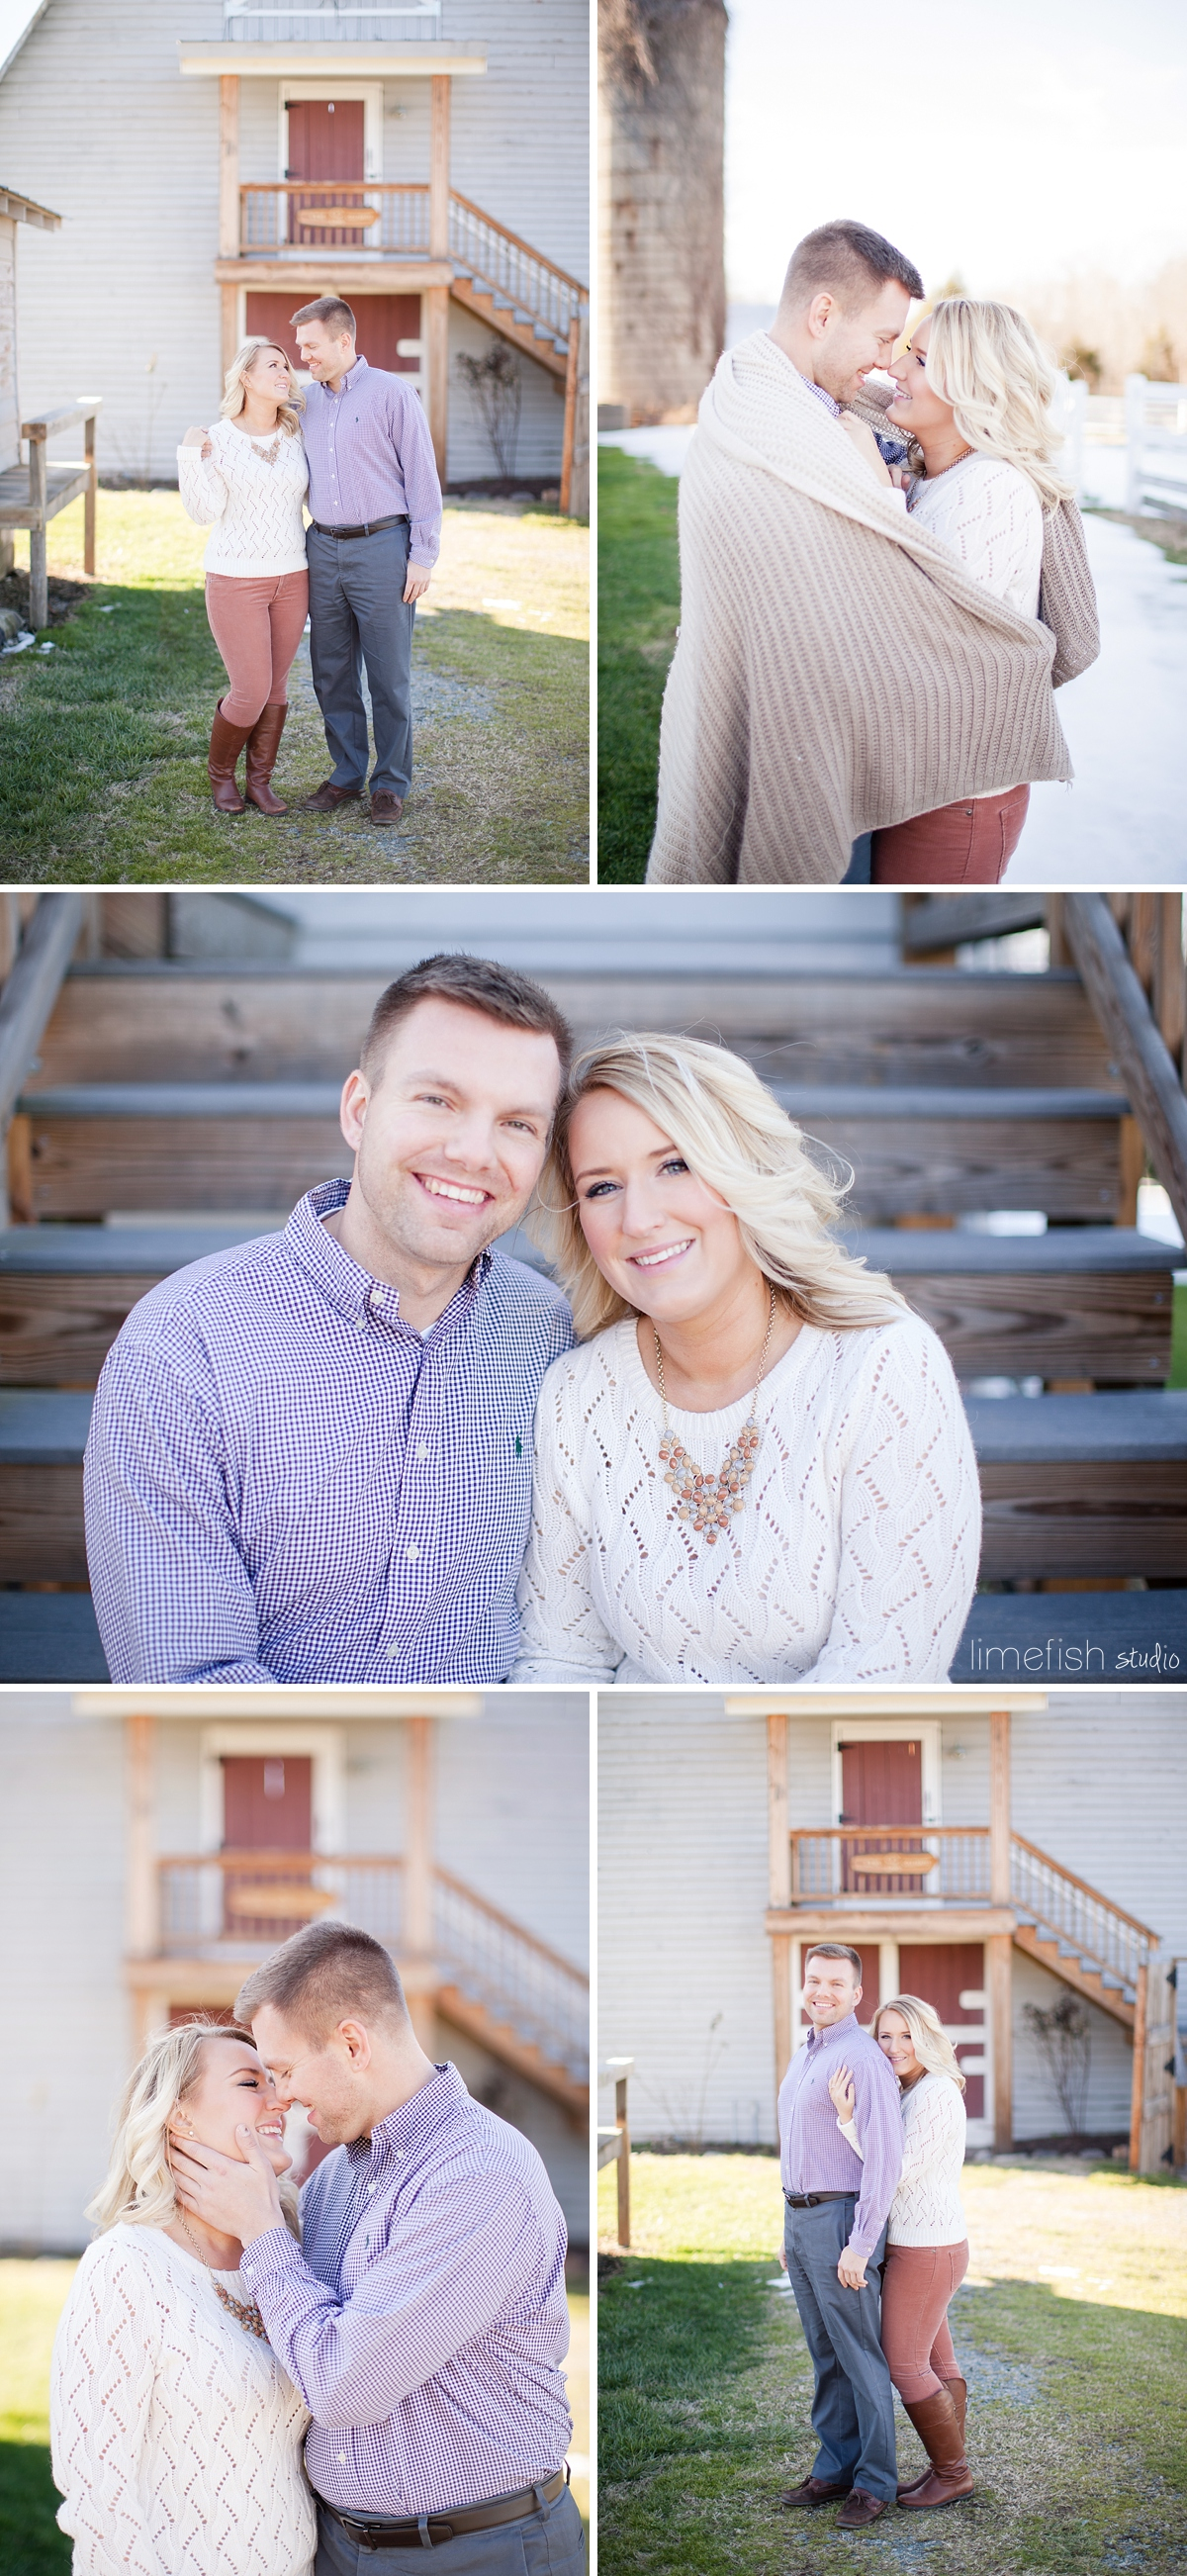 Anna Brent Amber Grove Wedding Richmond Engagement Session Limefish Studio Photography